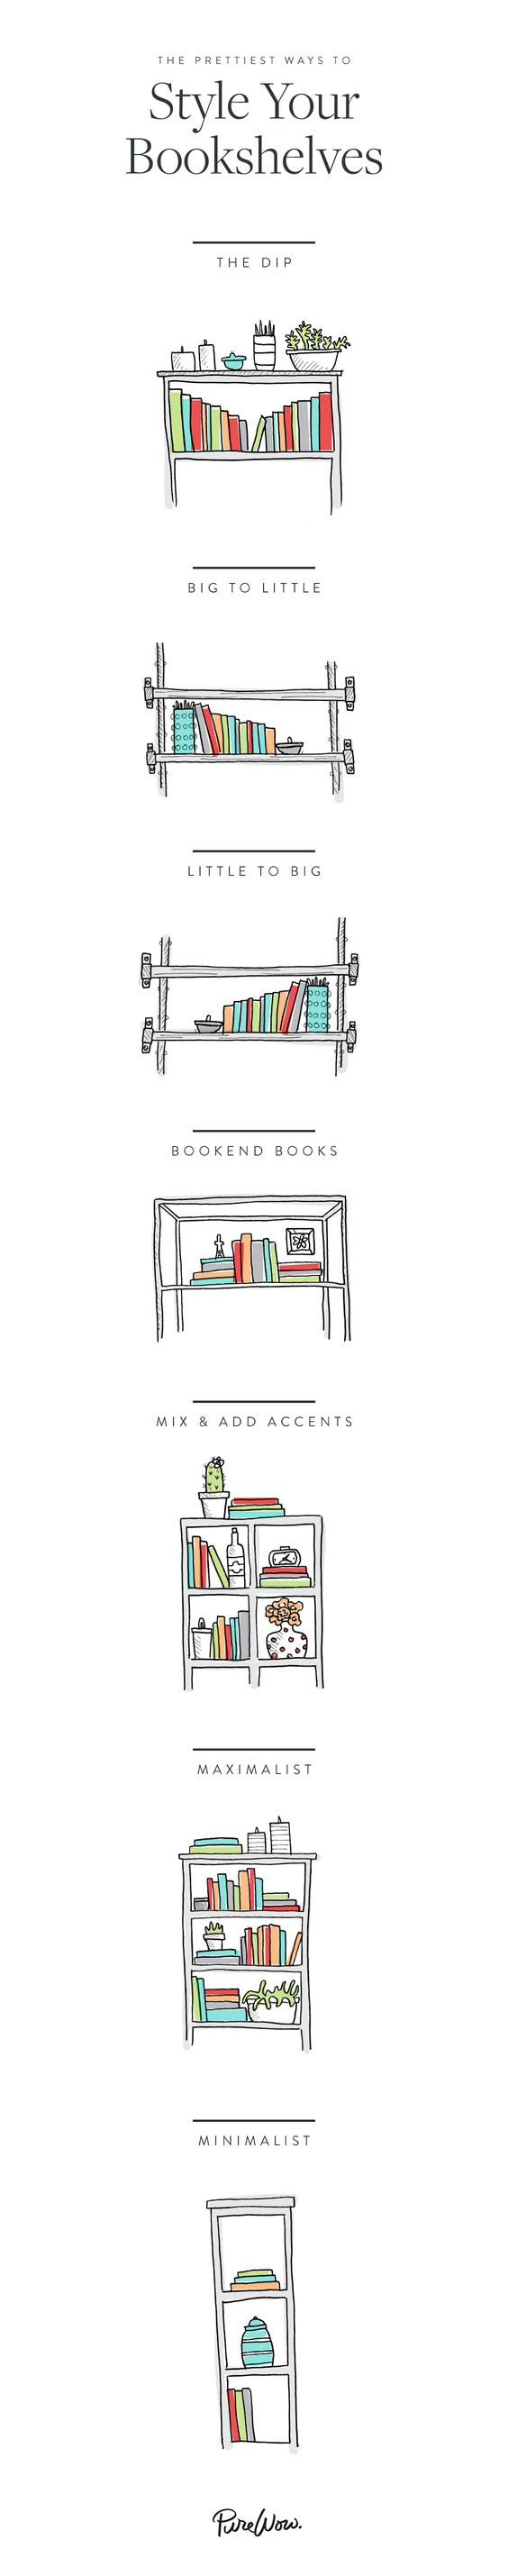 All the Glorious Ways You Can Arrange Your Bookshelves via @PureWow: